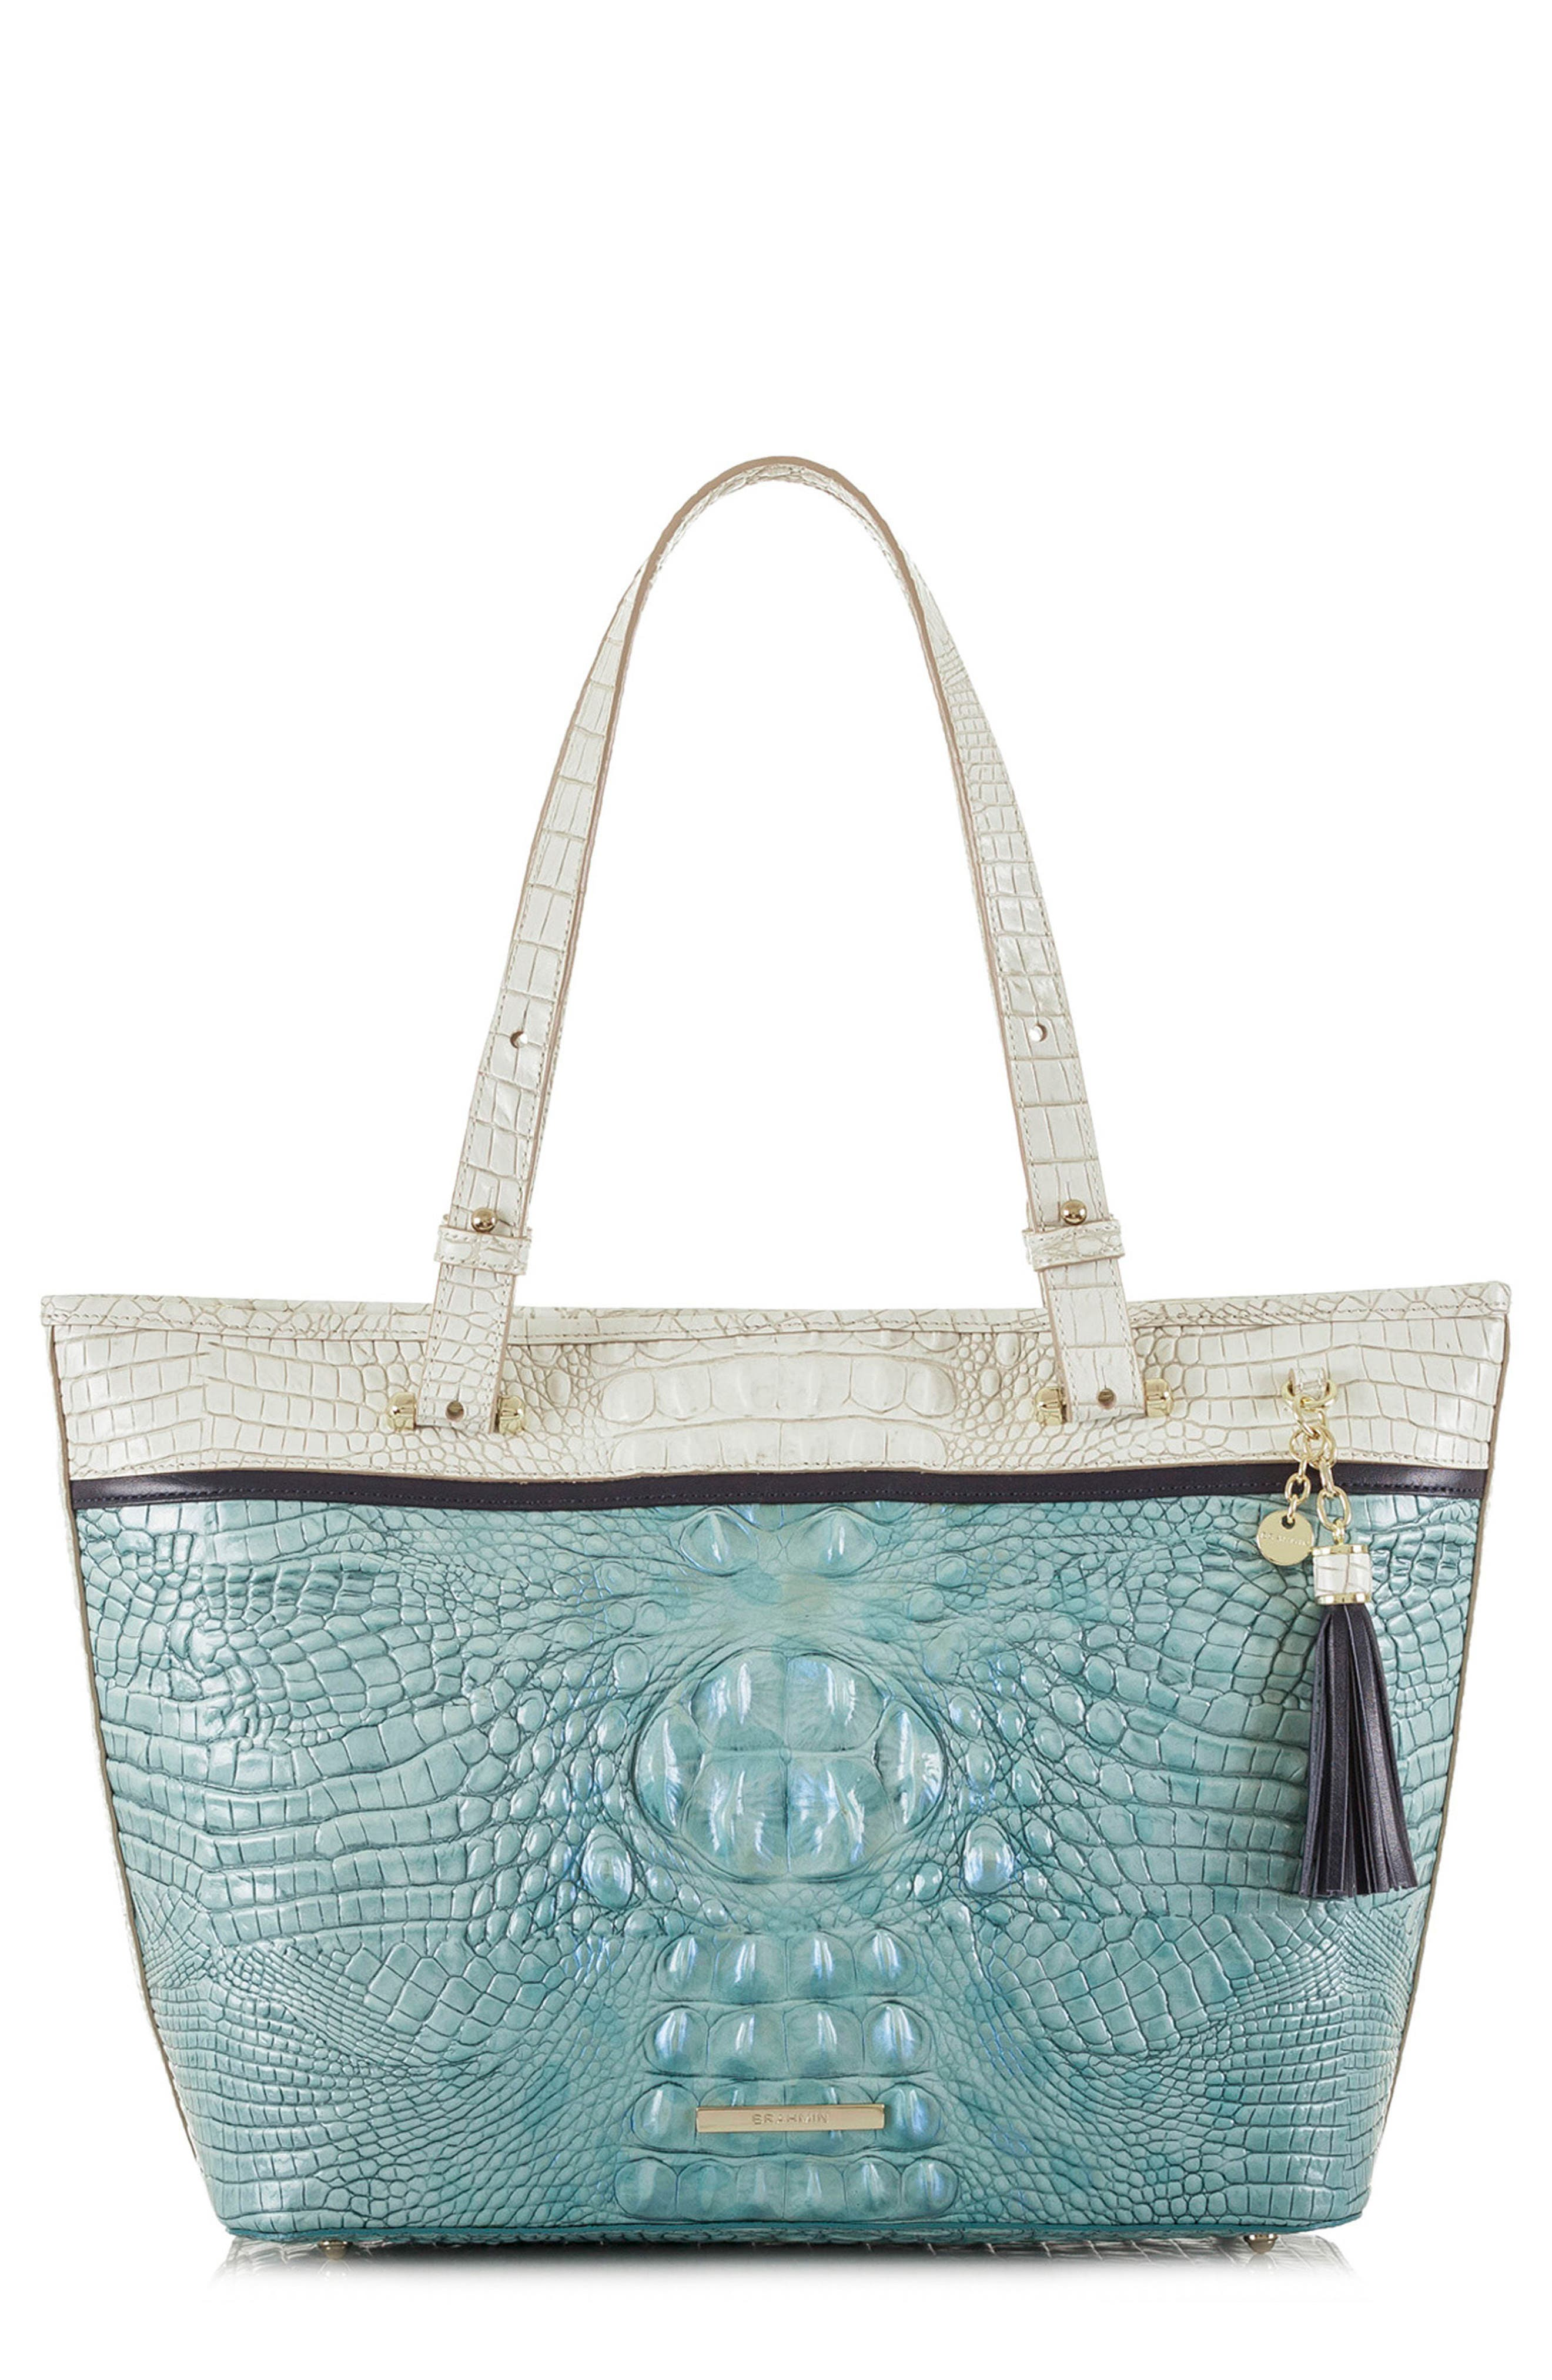 Medium Asher Embossed Leather Tote,                             Main thumbnail 1, color,                             Astral